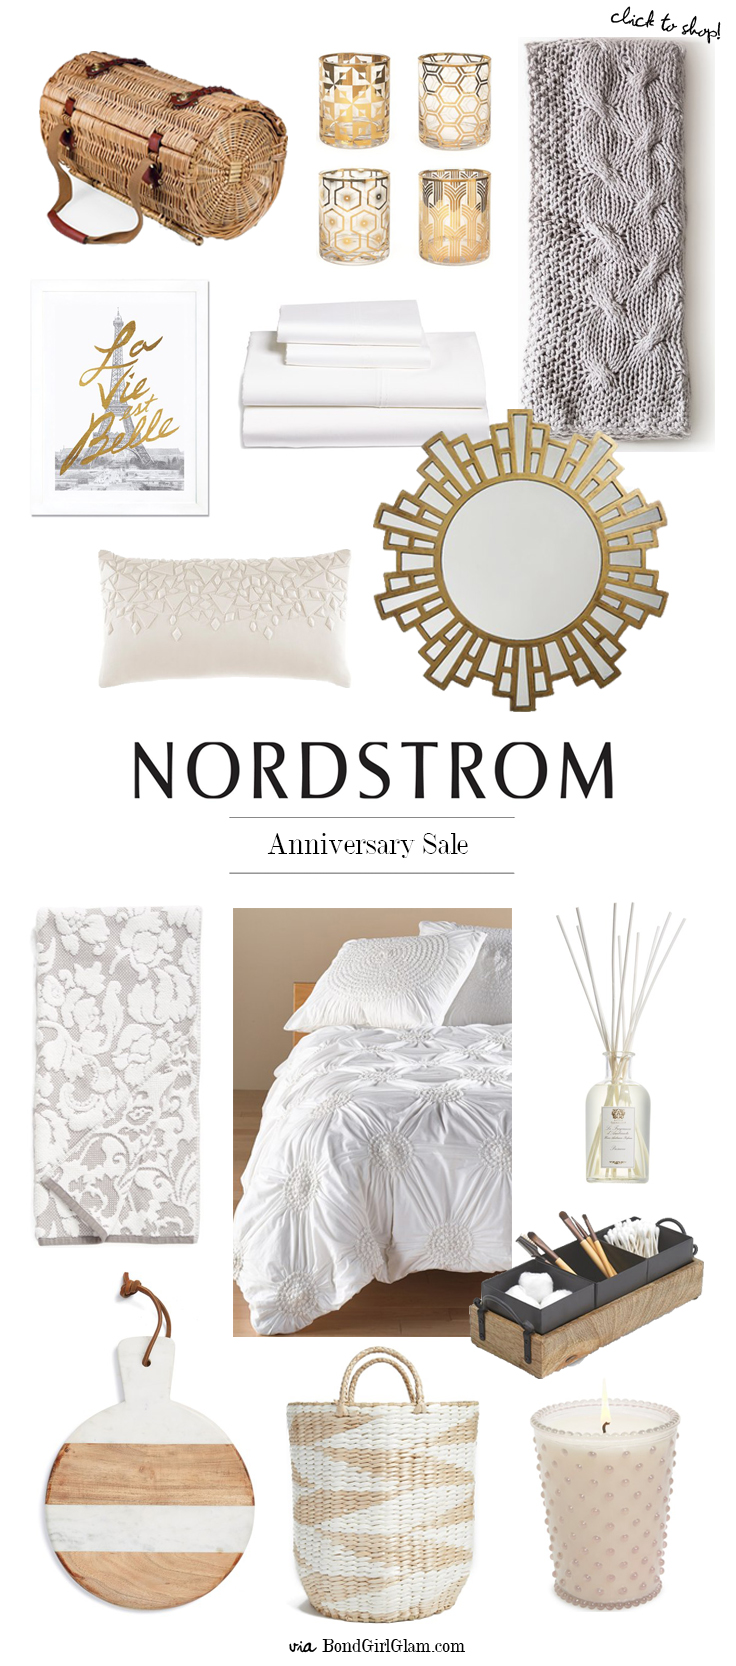 Nordstrom early access anniversary sale home d cor for Home decor sales online